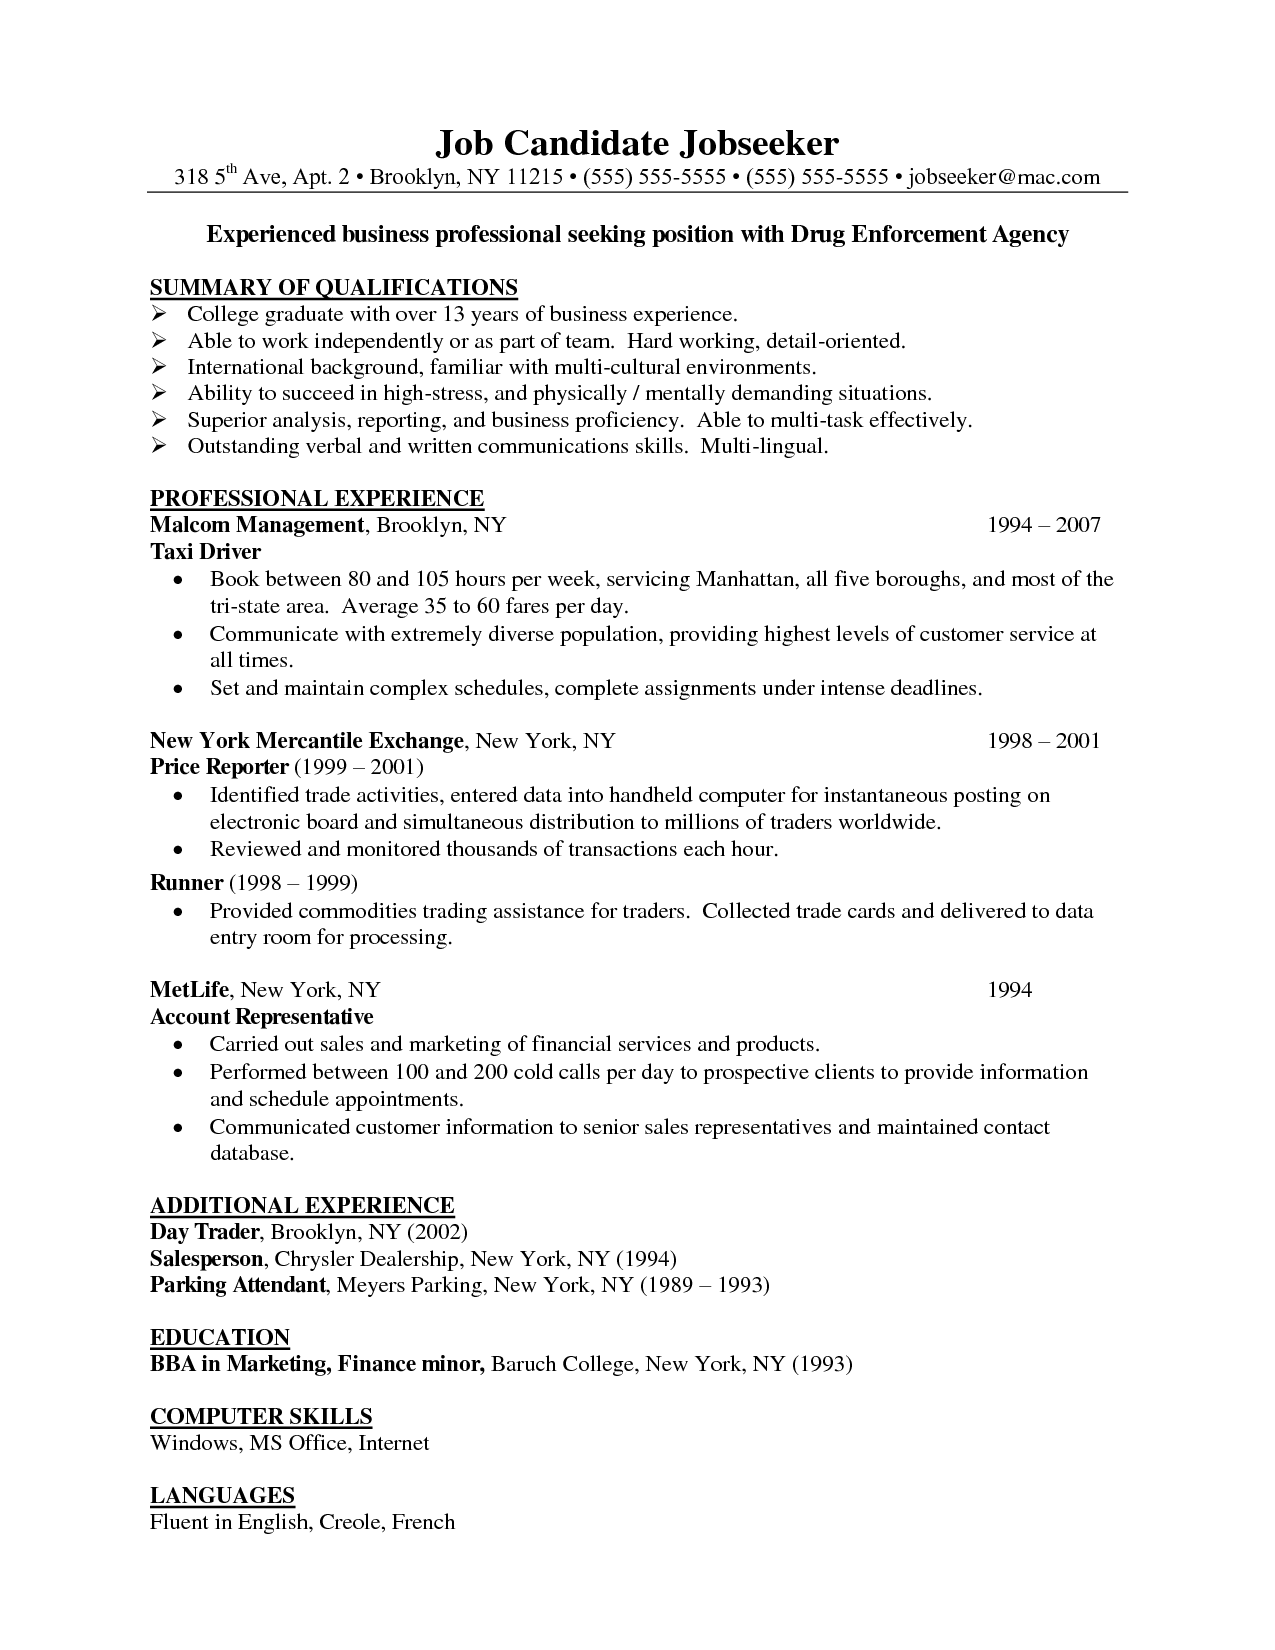 Sample Business Resume Template  Sample Resume Center